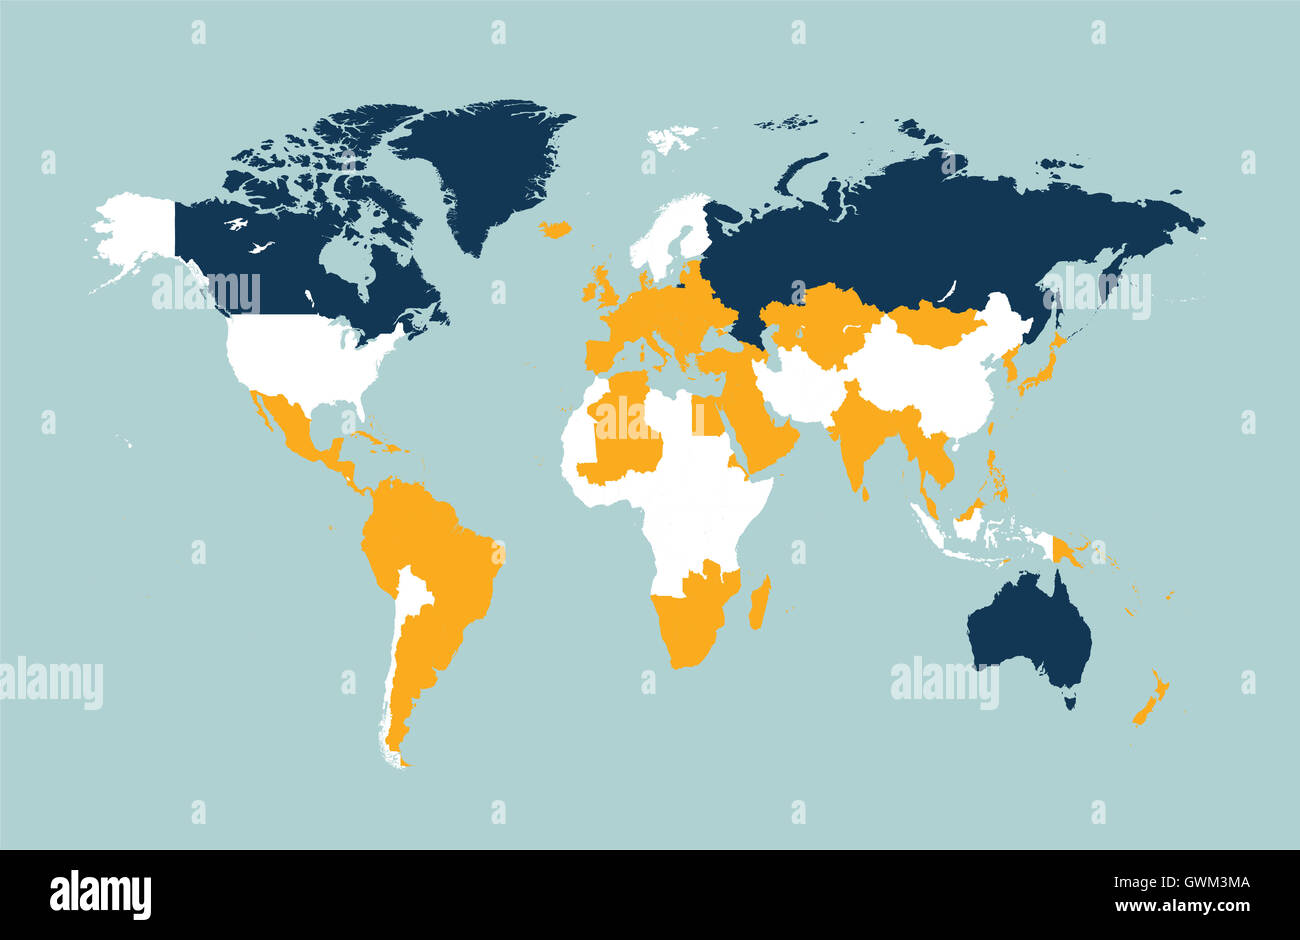 world map vector flat with countries blue - Stock Image